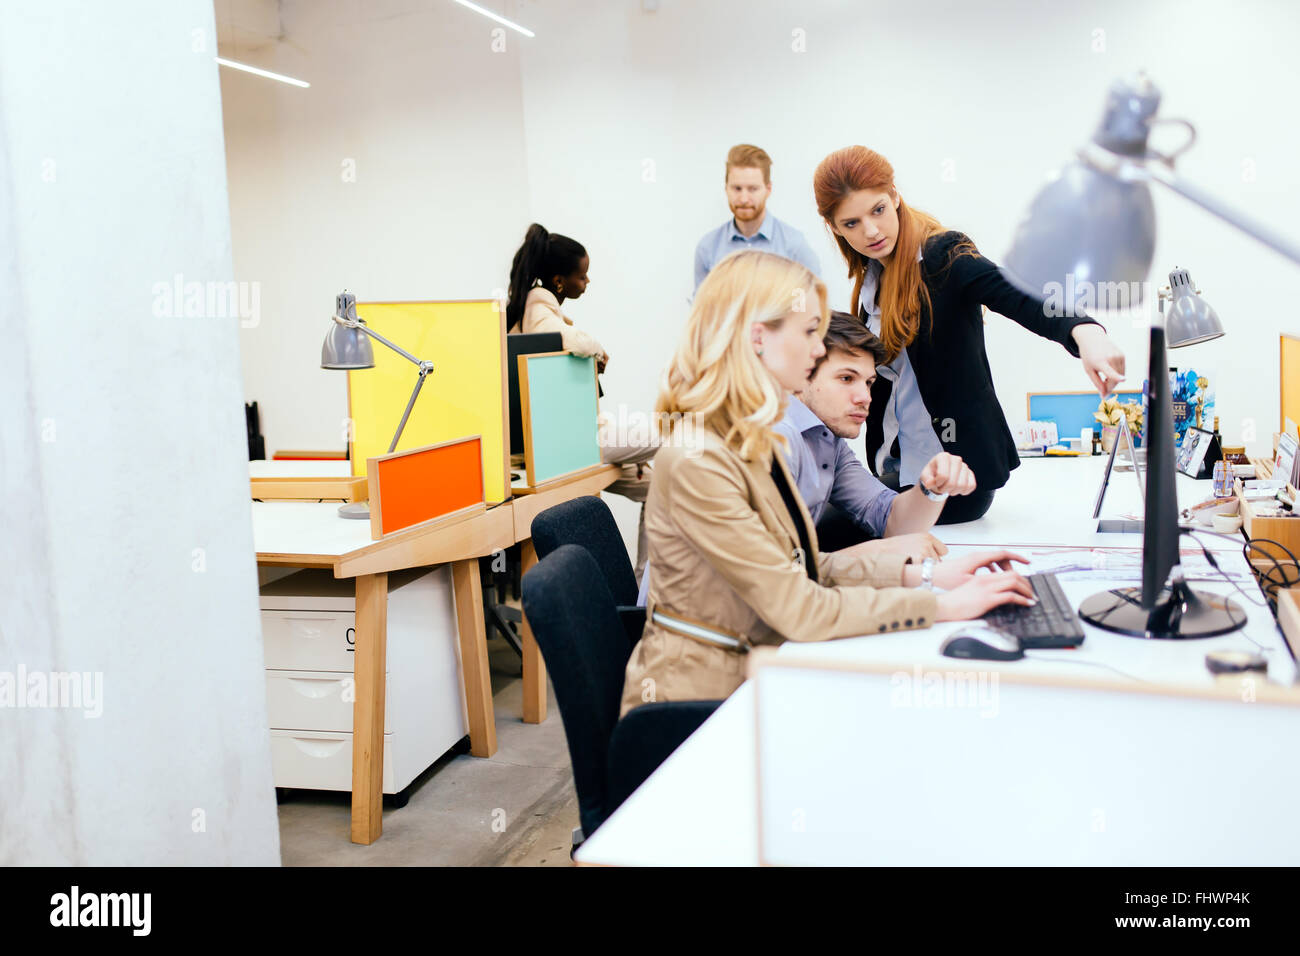 Coworkers solving problems together in modern office - Stock Image